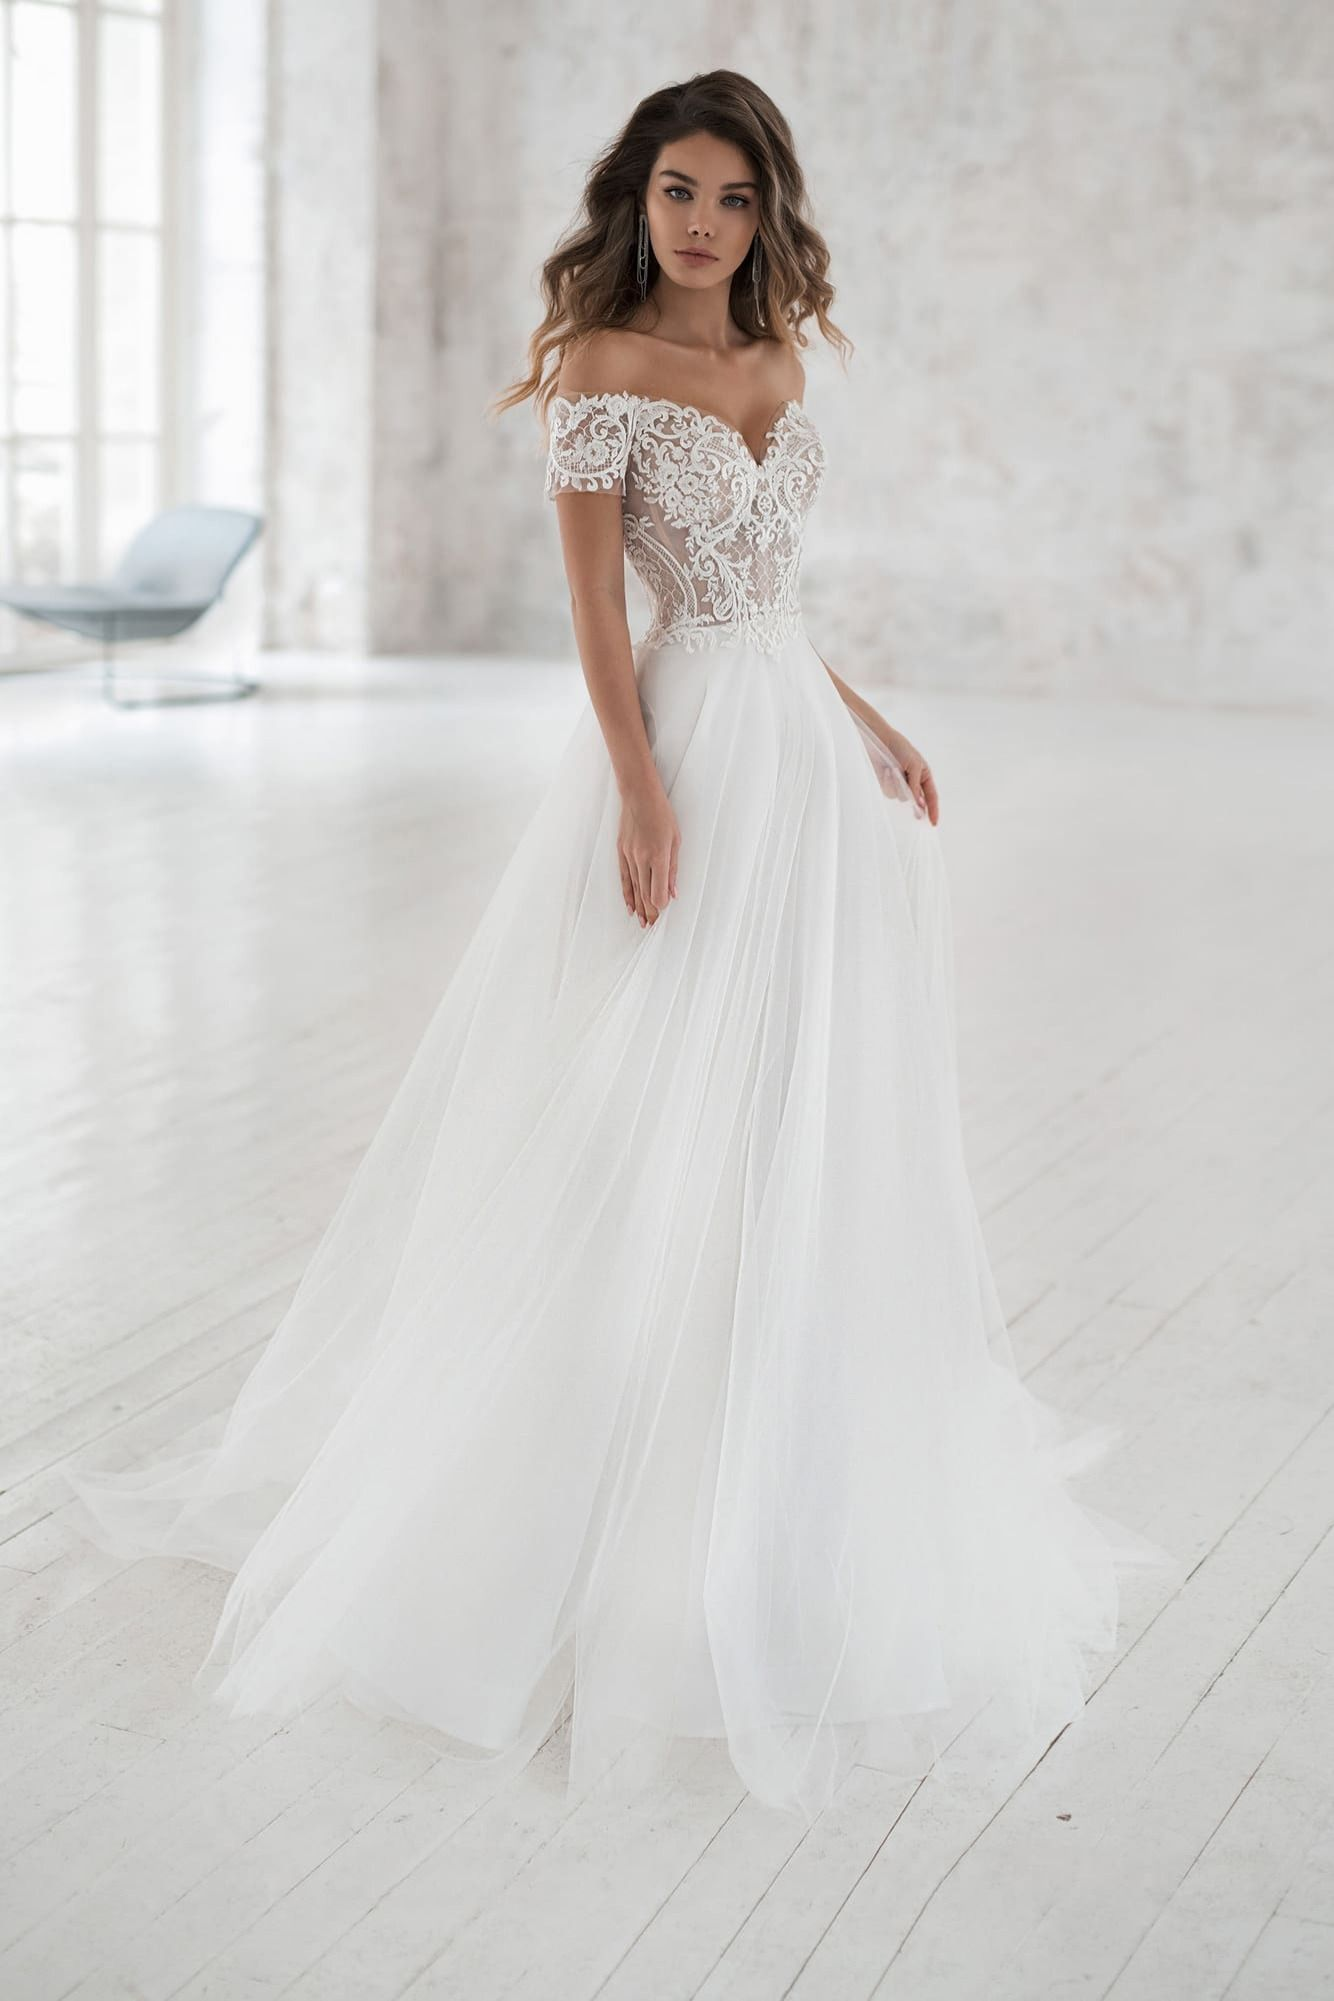 Natalia Romanova Aylin Simple Elegant Wedding Dress Off Shoulder Wedding Dress Elegant Wedding Dress